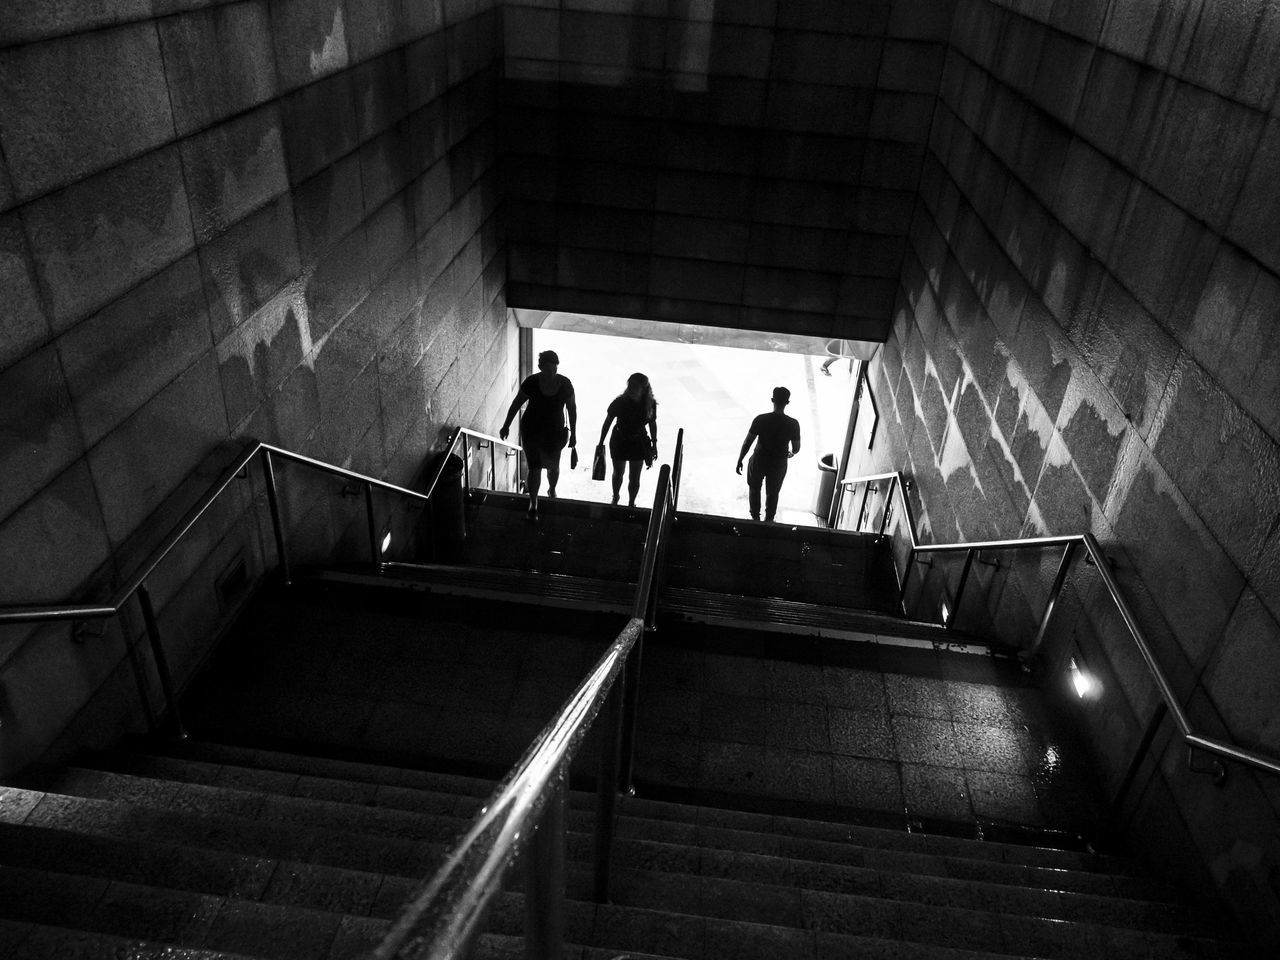 Silhouette of three people walking on the stairs of an underground passage at night B&w B&w Photography Black And White Blackandwhite City City Life Entering Looking Down Night People Railing Silhouette Silhouettes Staircase Steps Steps And Staircases Streetphotography Urban Urbanphotography Walking